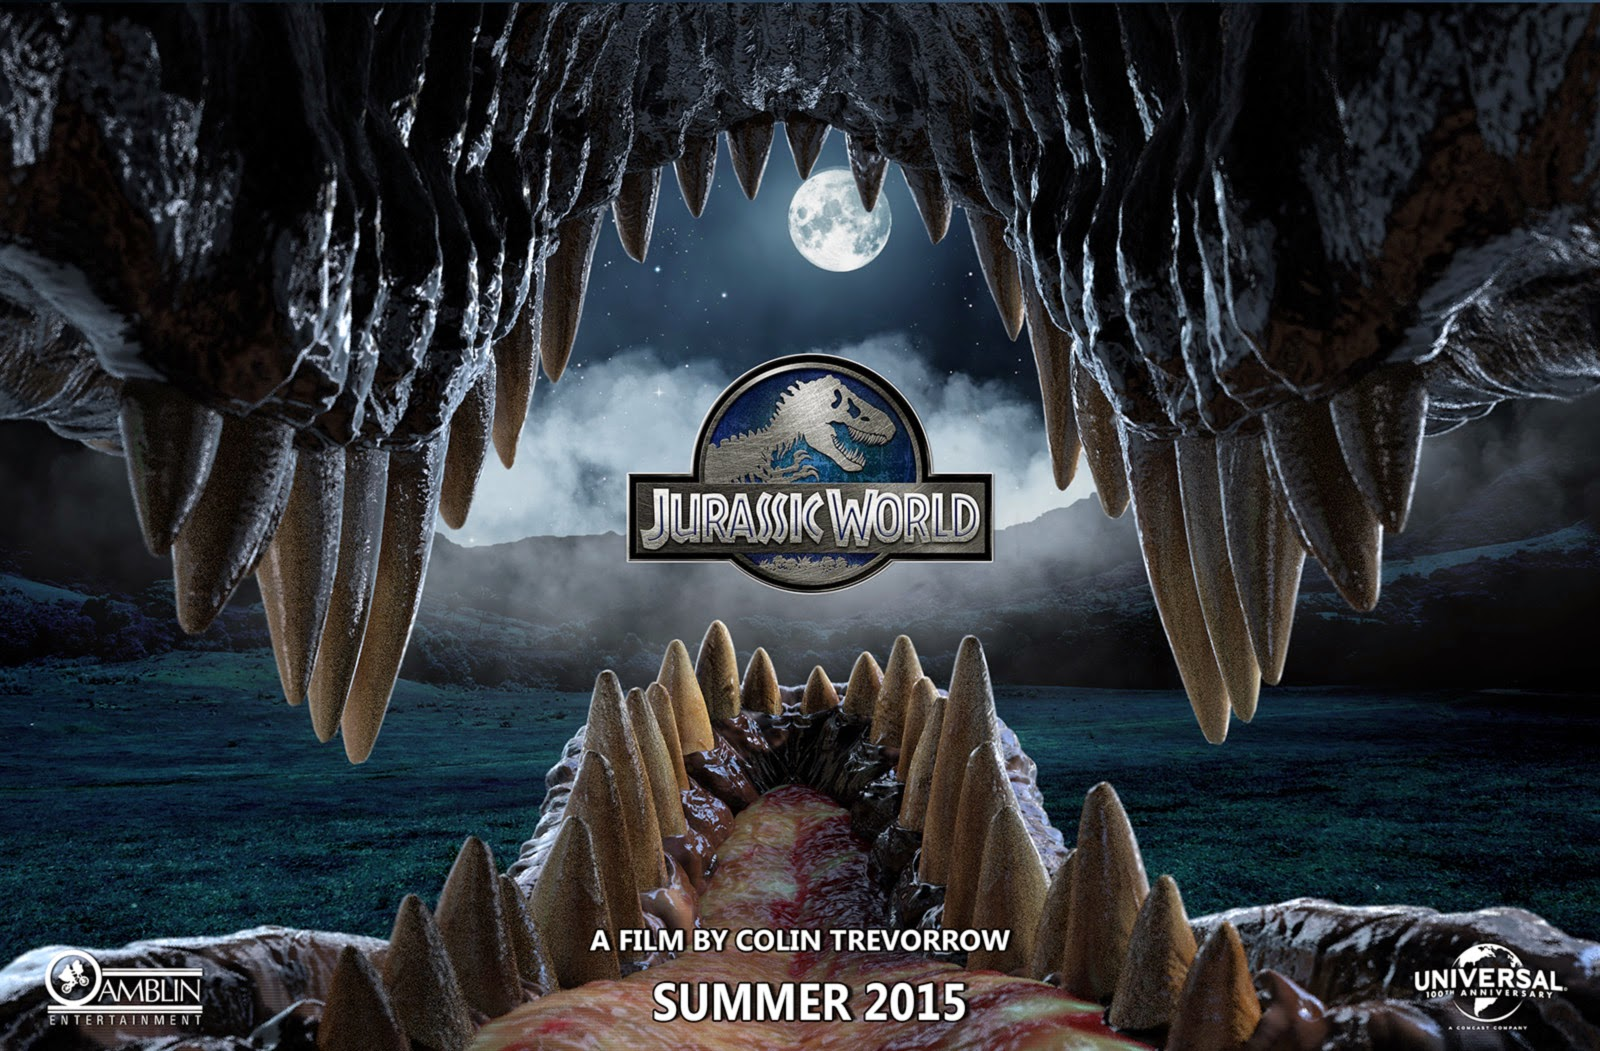 Jurassic World, affiche de fan